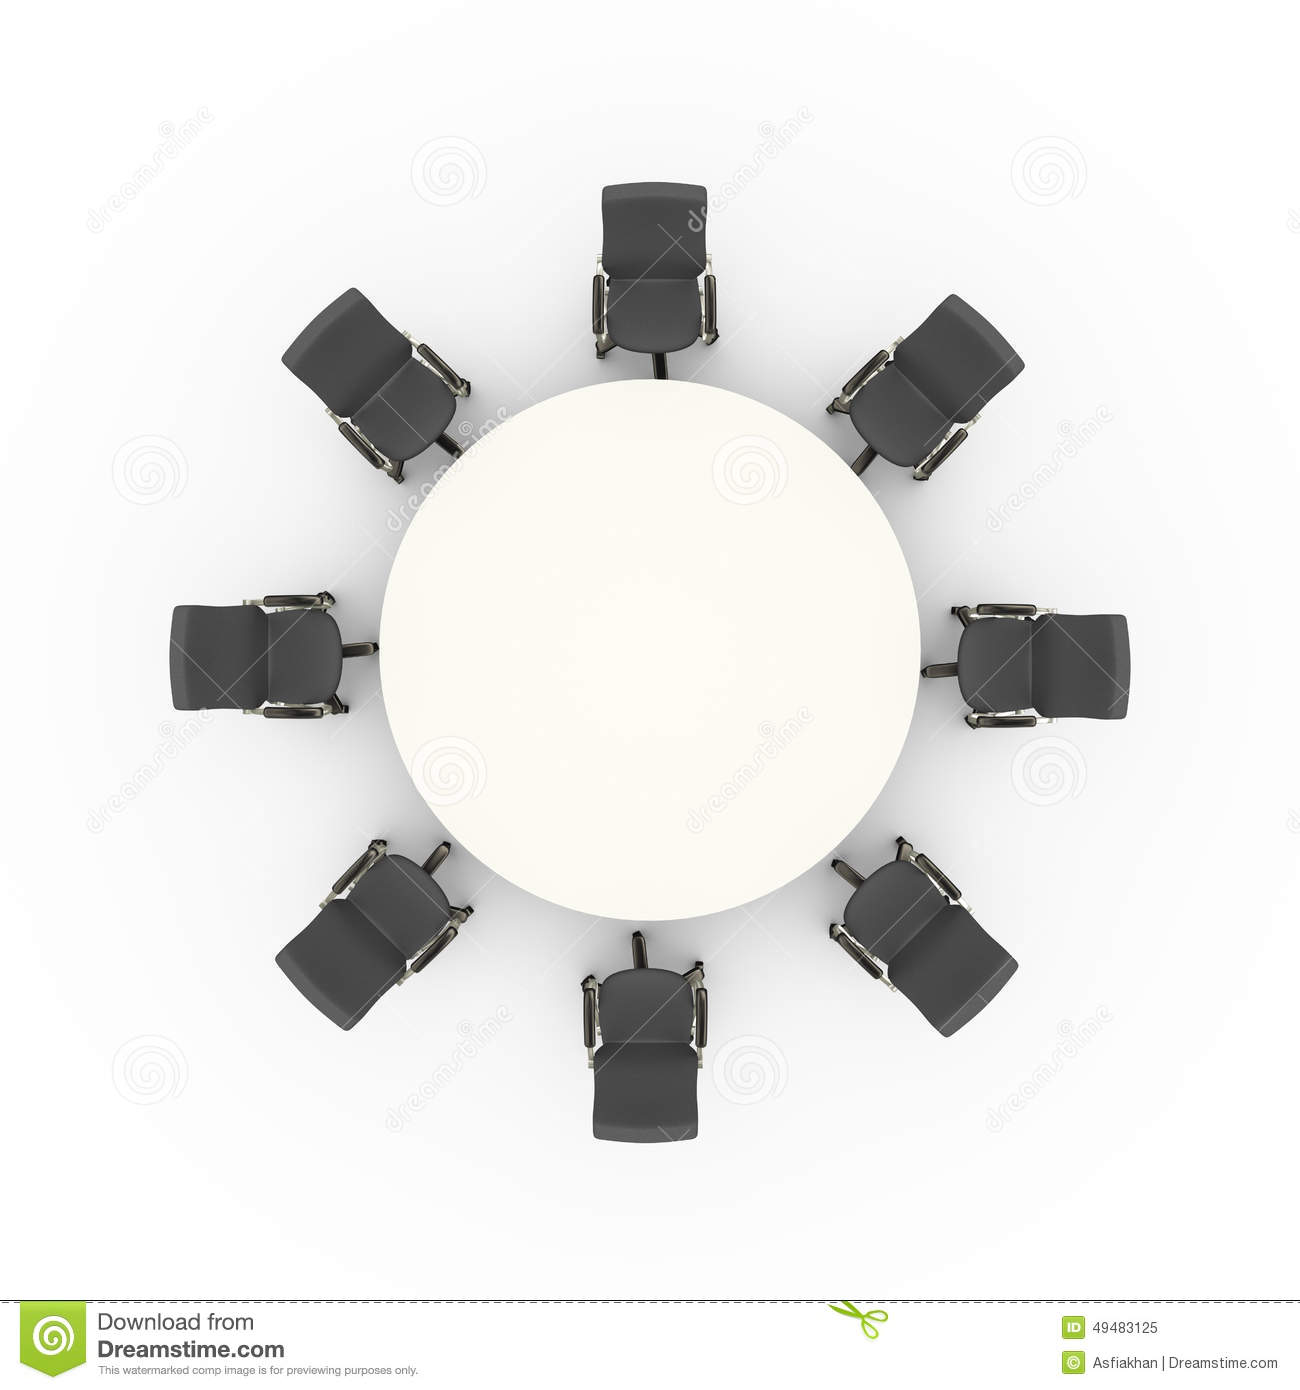 table and chairs top view round table discussion 3d business meeting conference table business meeting conference table stock illustration